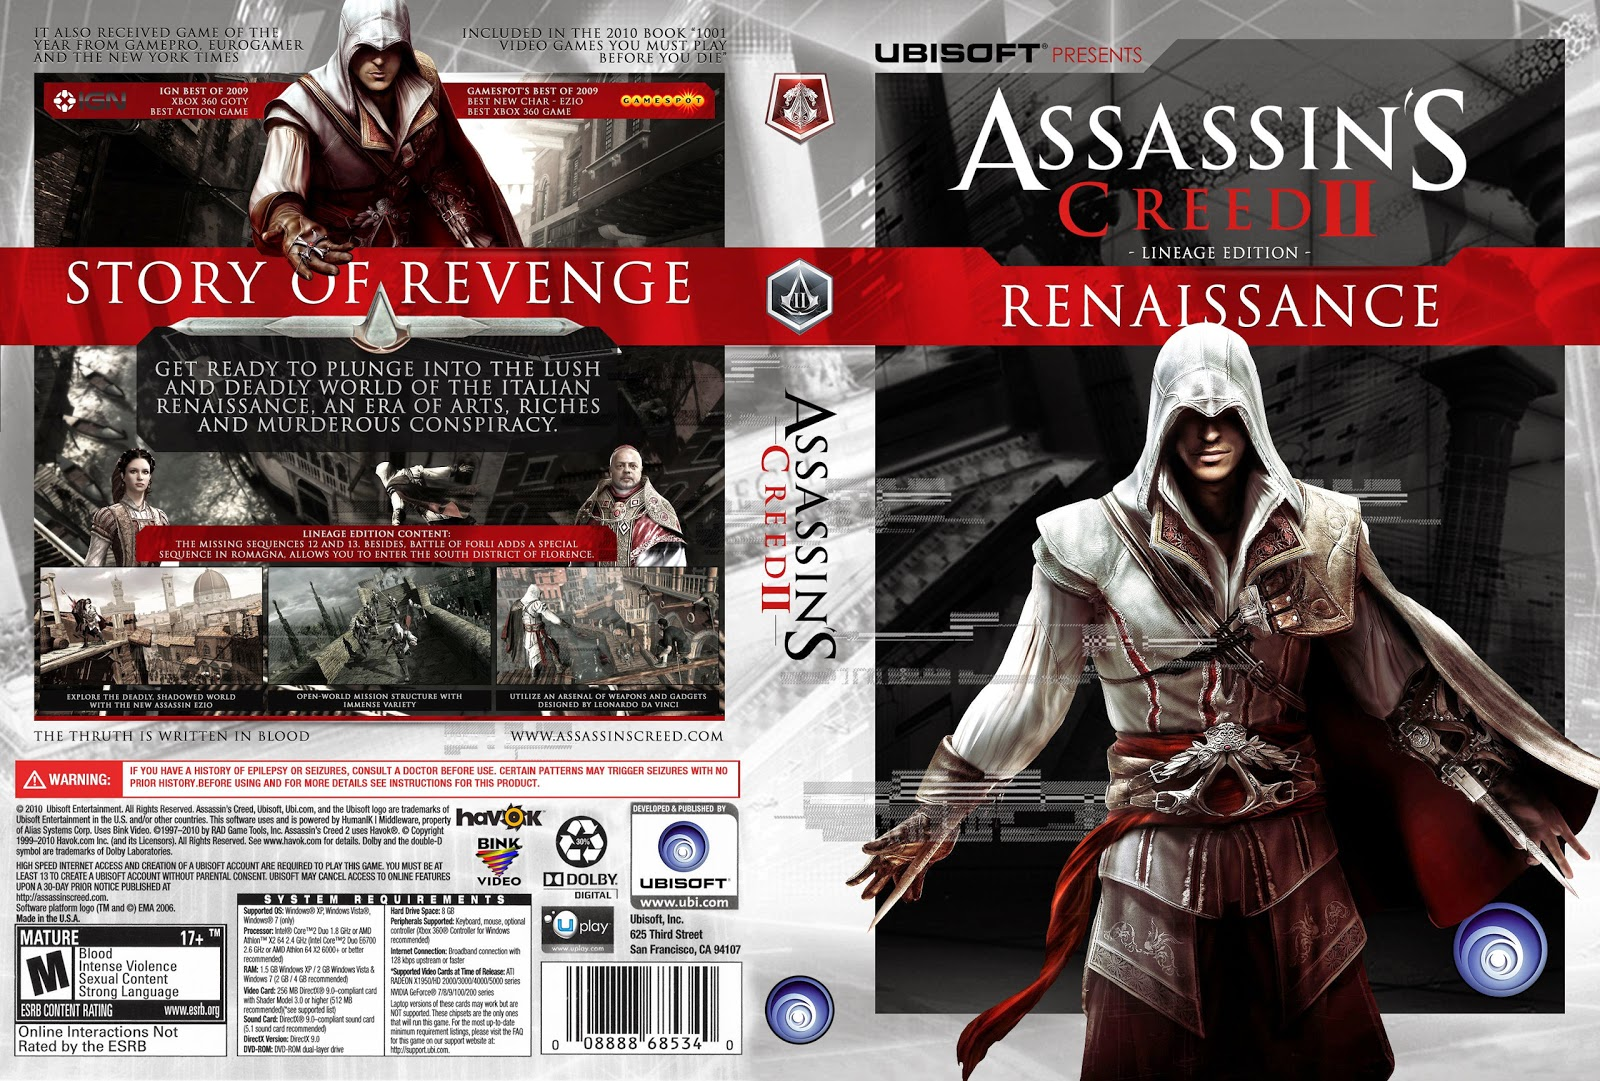 Capa Assassins Creed III Renaissance Lineage Edition PC